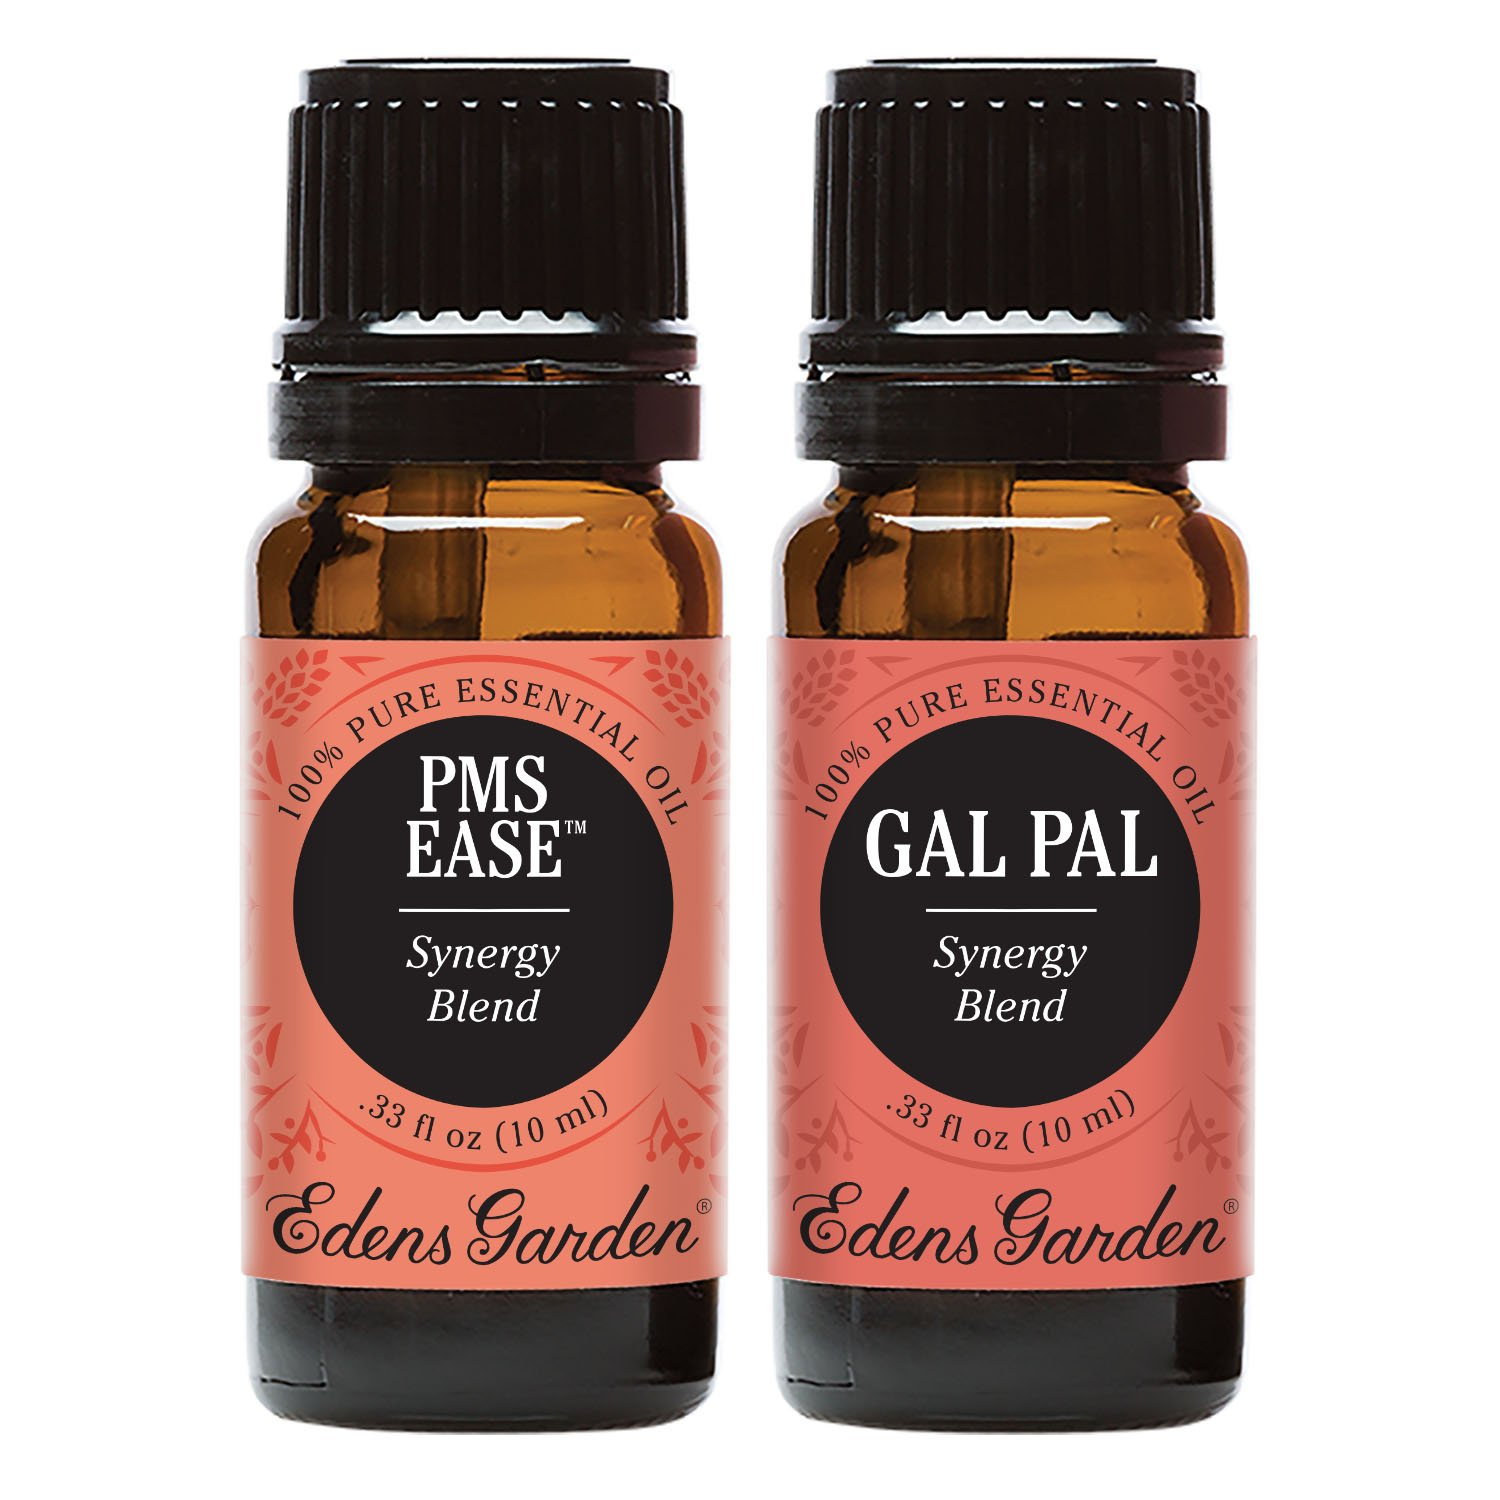 PMS Ease + Gal Pal Value Pack 100% Pure Therapeutic Grade Essential Oil by Edens Garden- 2 Set 10 ml